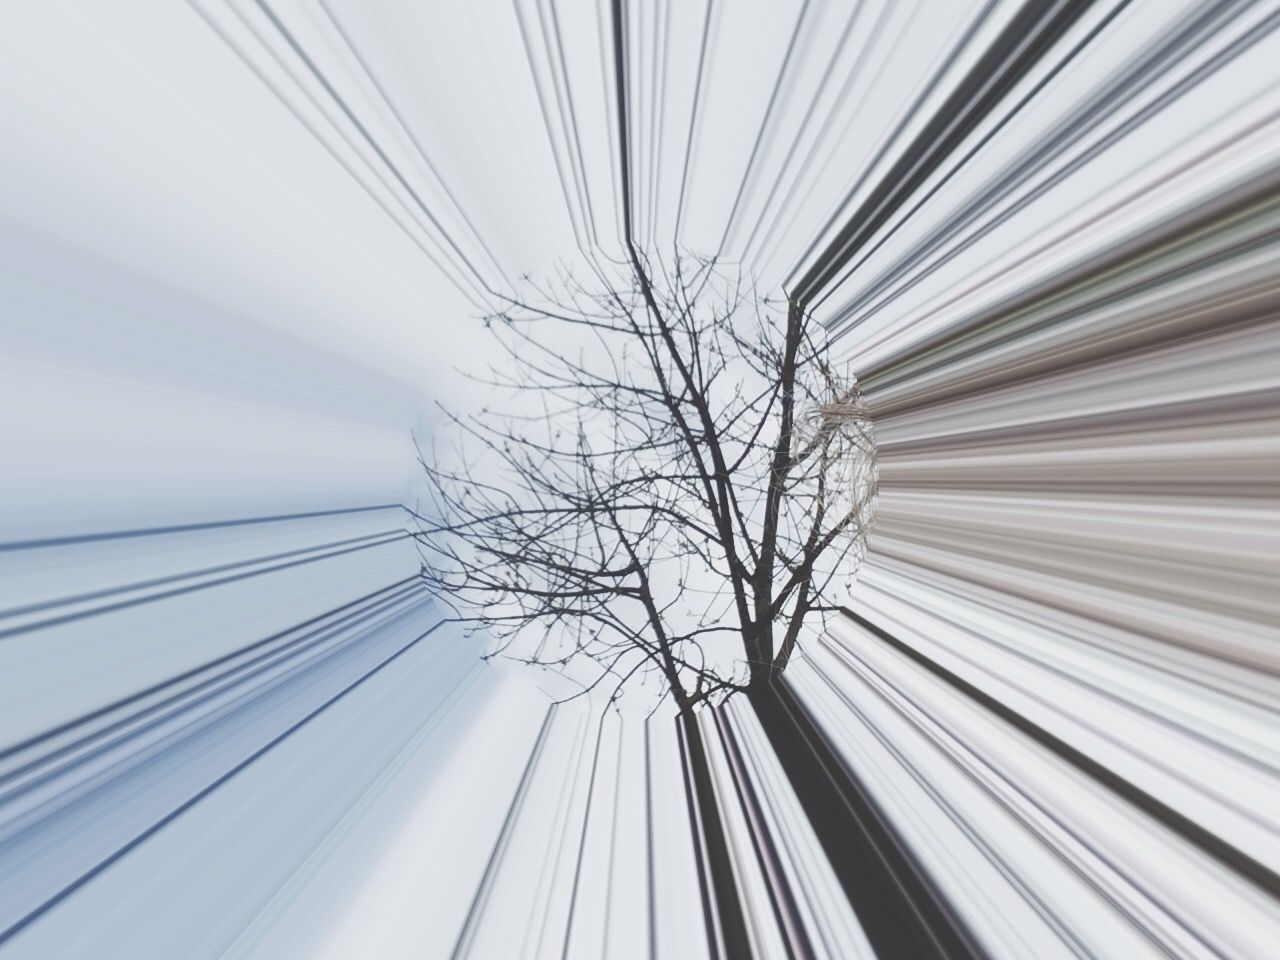 no people, low angle view, architecture, bare tree, built structure, metal, tree, indoors, day, pattern, nature, technology, sky, glass - material, white color, connection, directly below, cable, motion, steel, silver colored